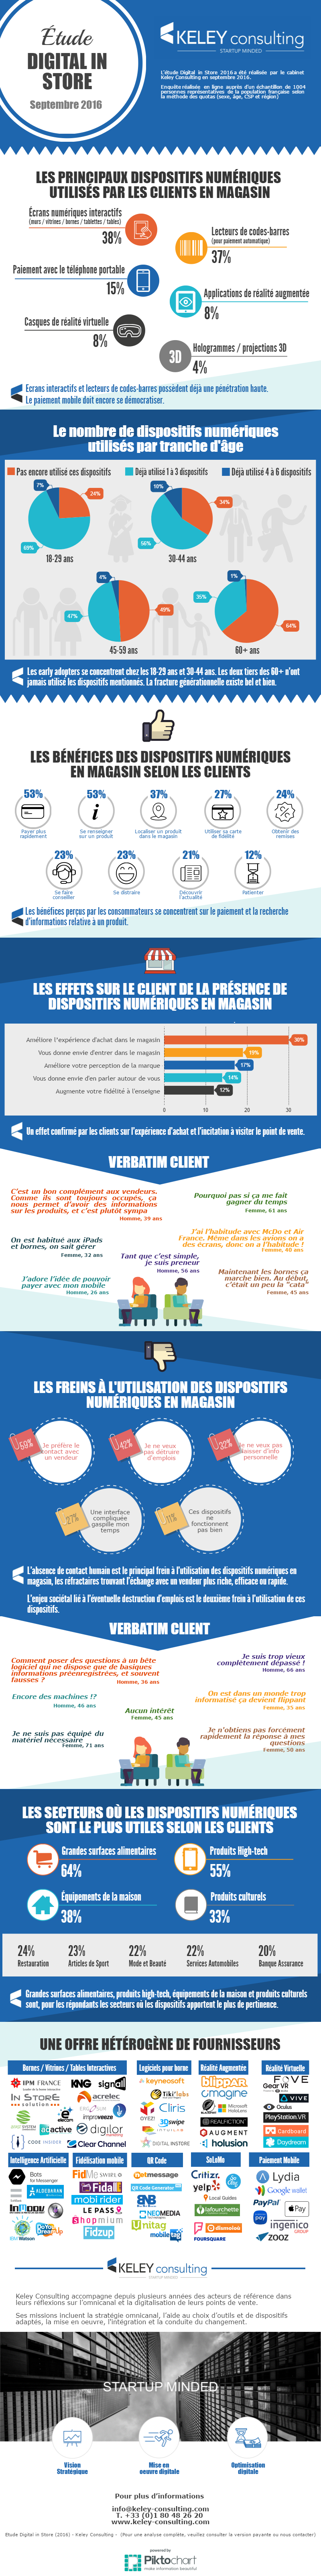 Infographie Digital in store Keley Consulting 2016